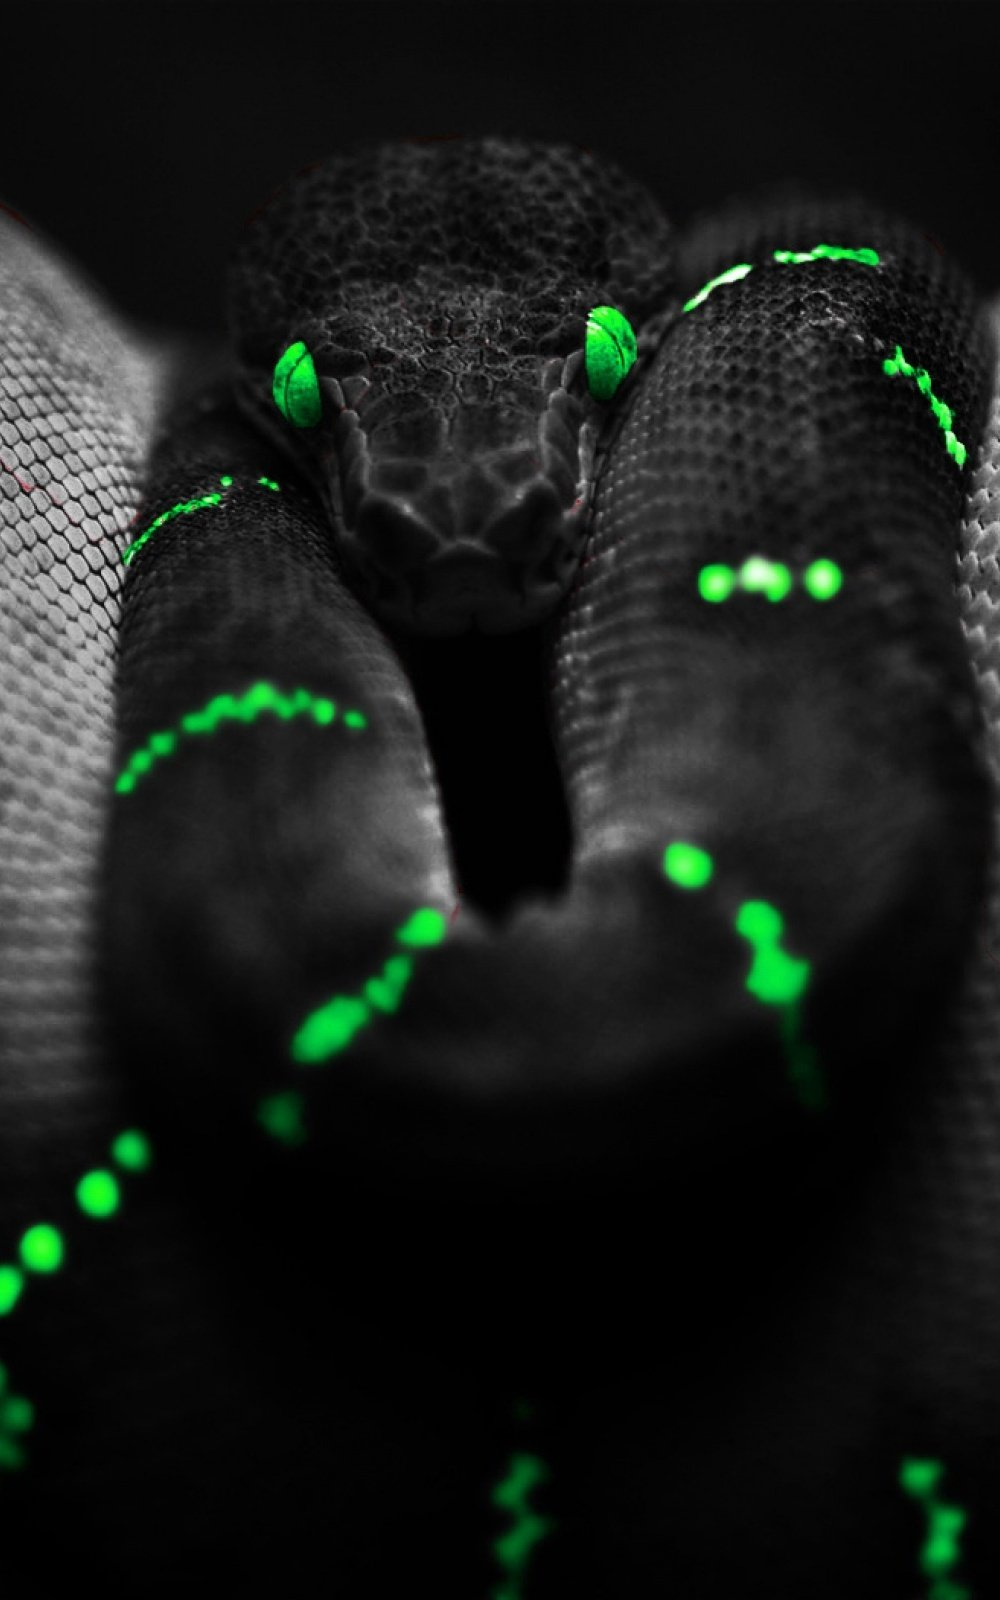 Black Snake Neon Green Android Wallpaper download 1000x1600